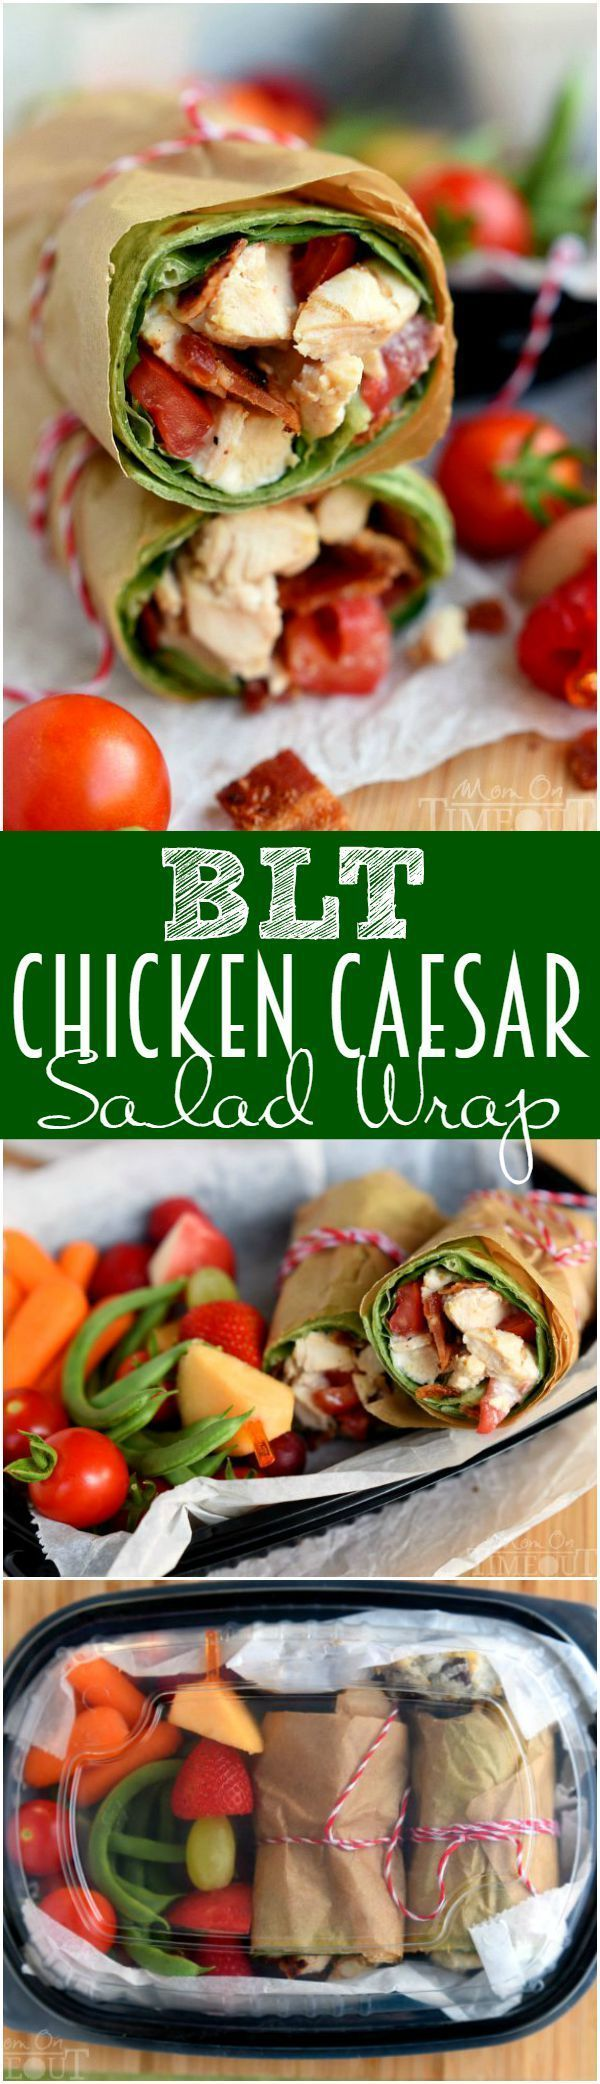 This BLT Chicken Caesar Salad Wrap has all the makings to become your new go-to recipe! Chicken, bacon, Caesar dressing, and tomato are wrapped up in an easy-to-make meal that is perfect for a light dinner or lunch.  | MomOnTimeout.com